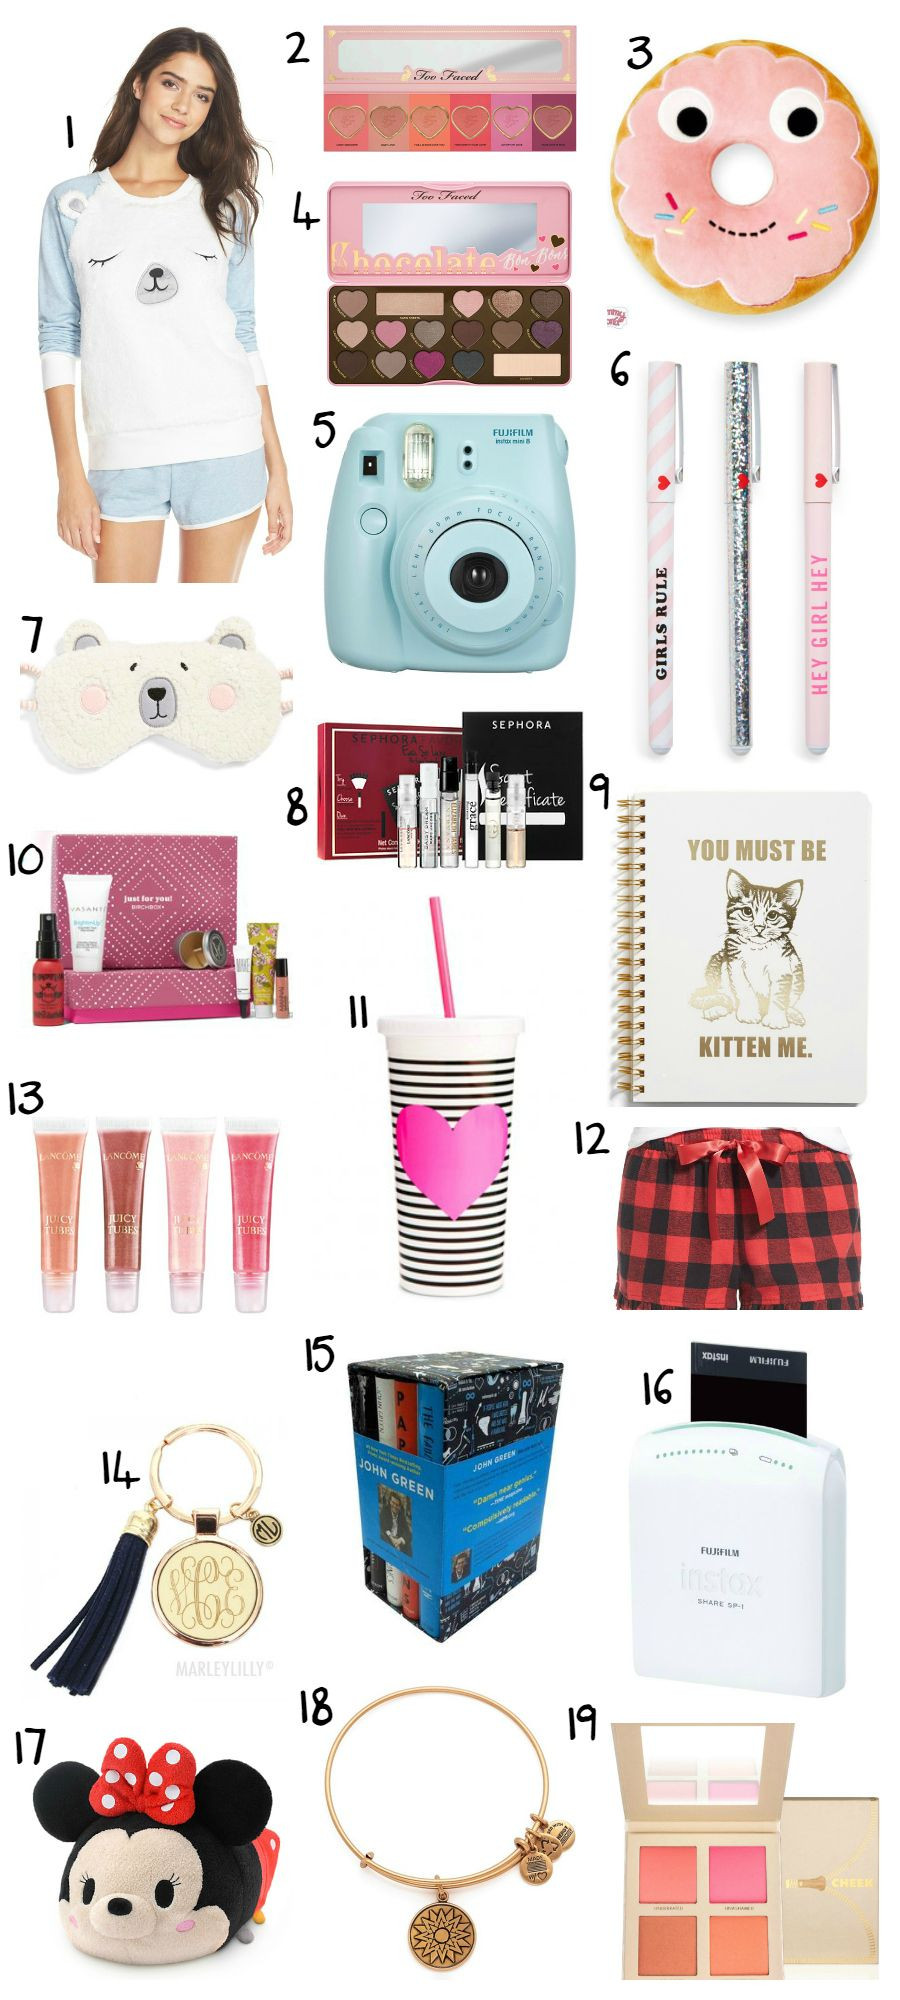 Best ideas about Gift Ideas Teen Girls . Save or Pin The Best Christmas Gift Ideas for Teens Now.